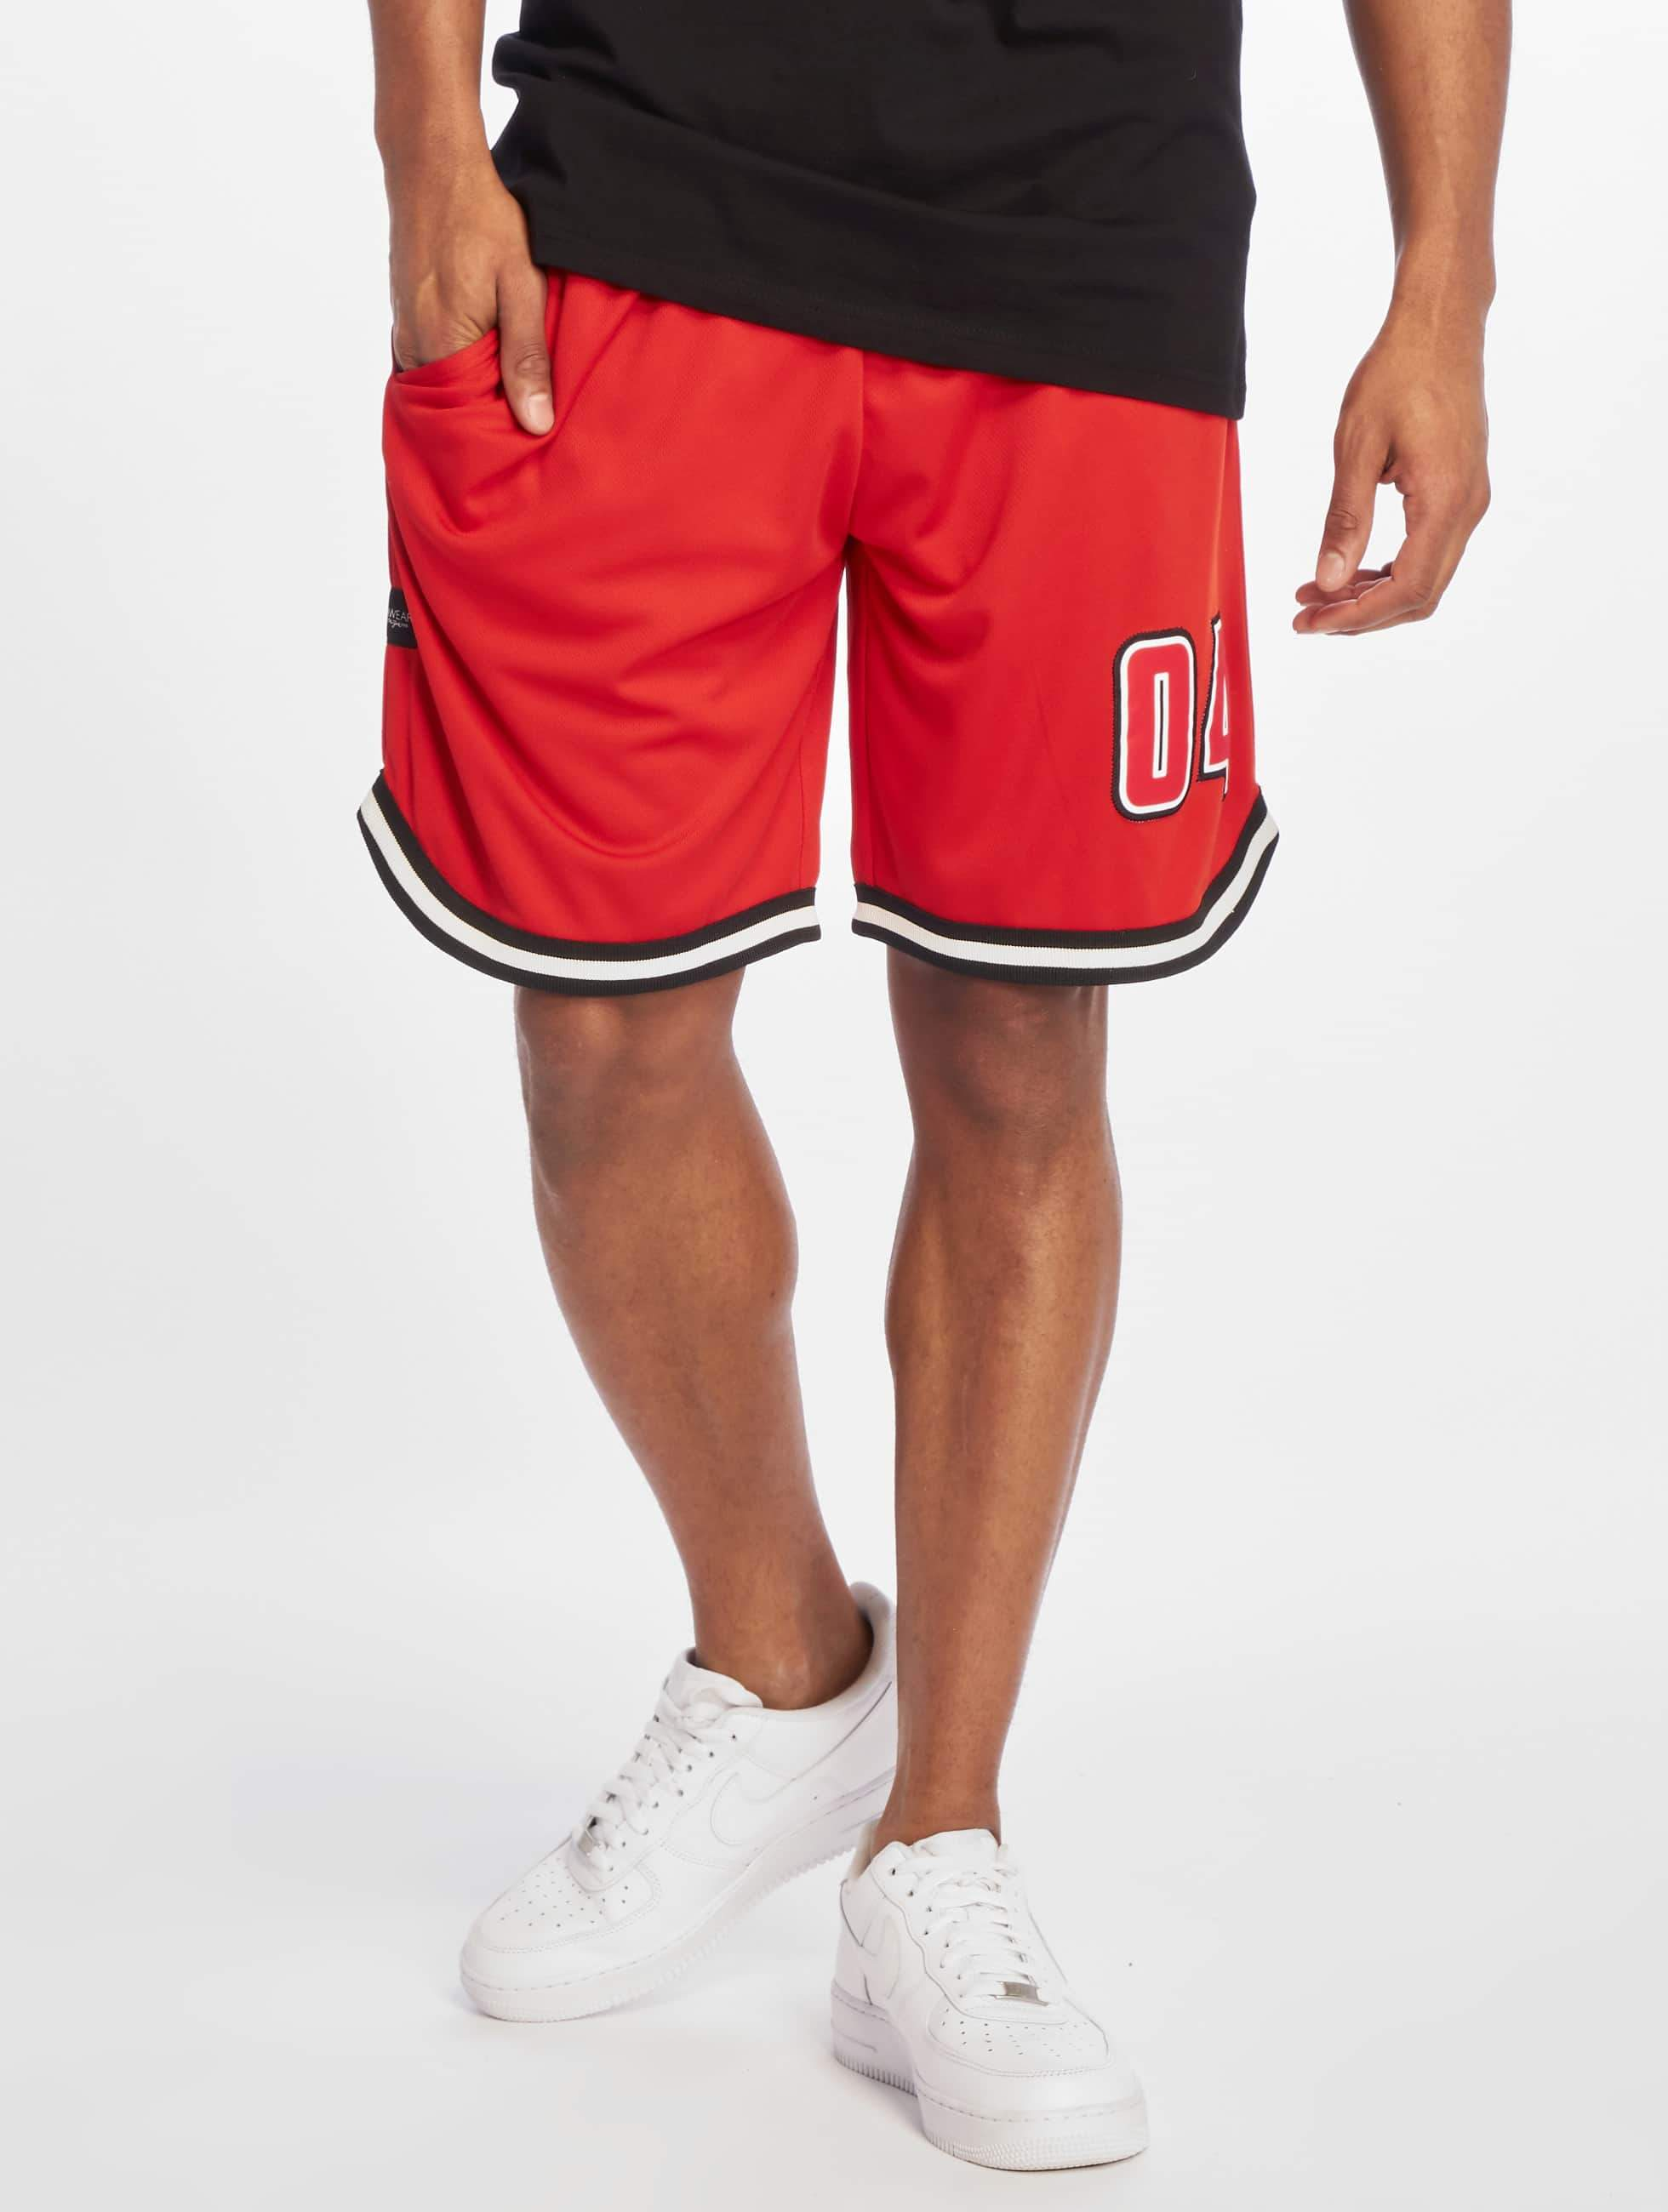 Rocawear / Short Mesh in red S